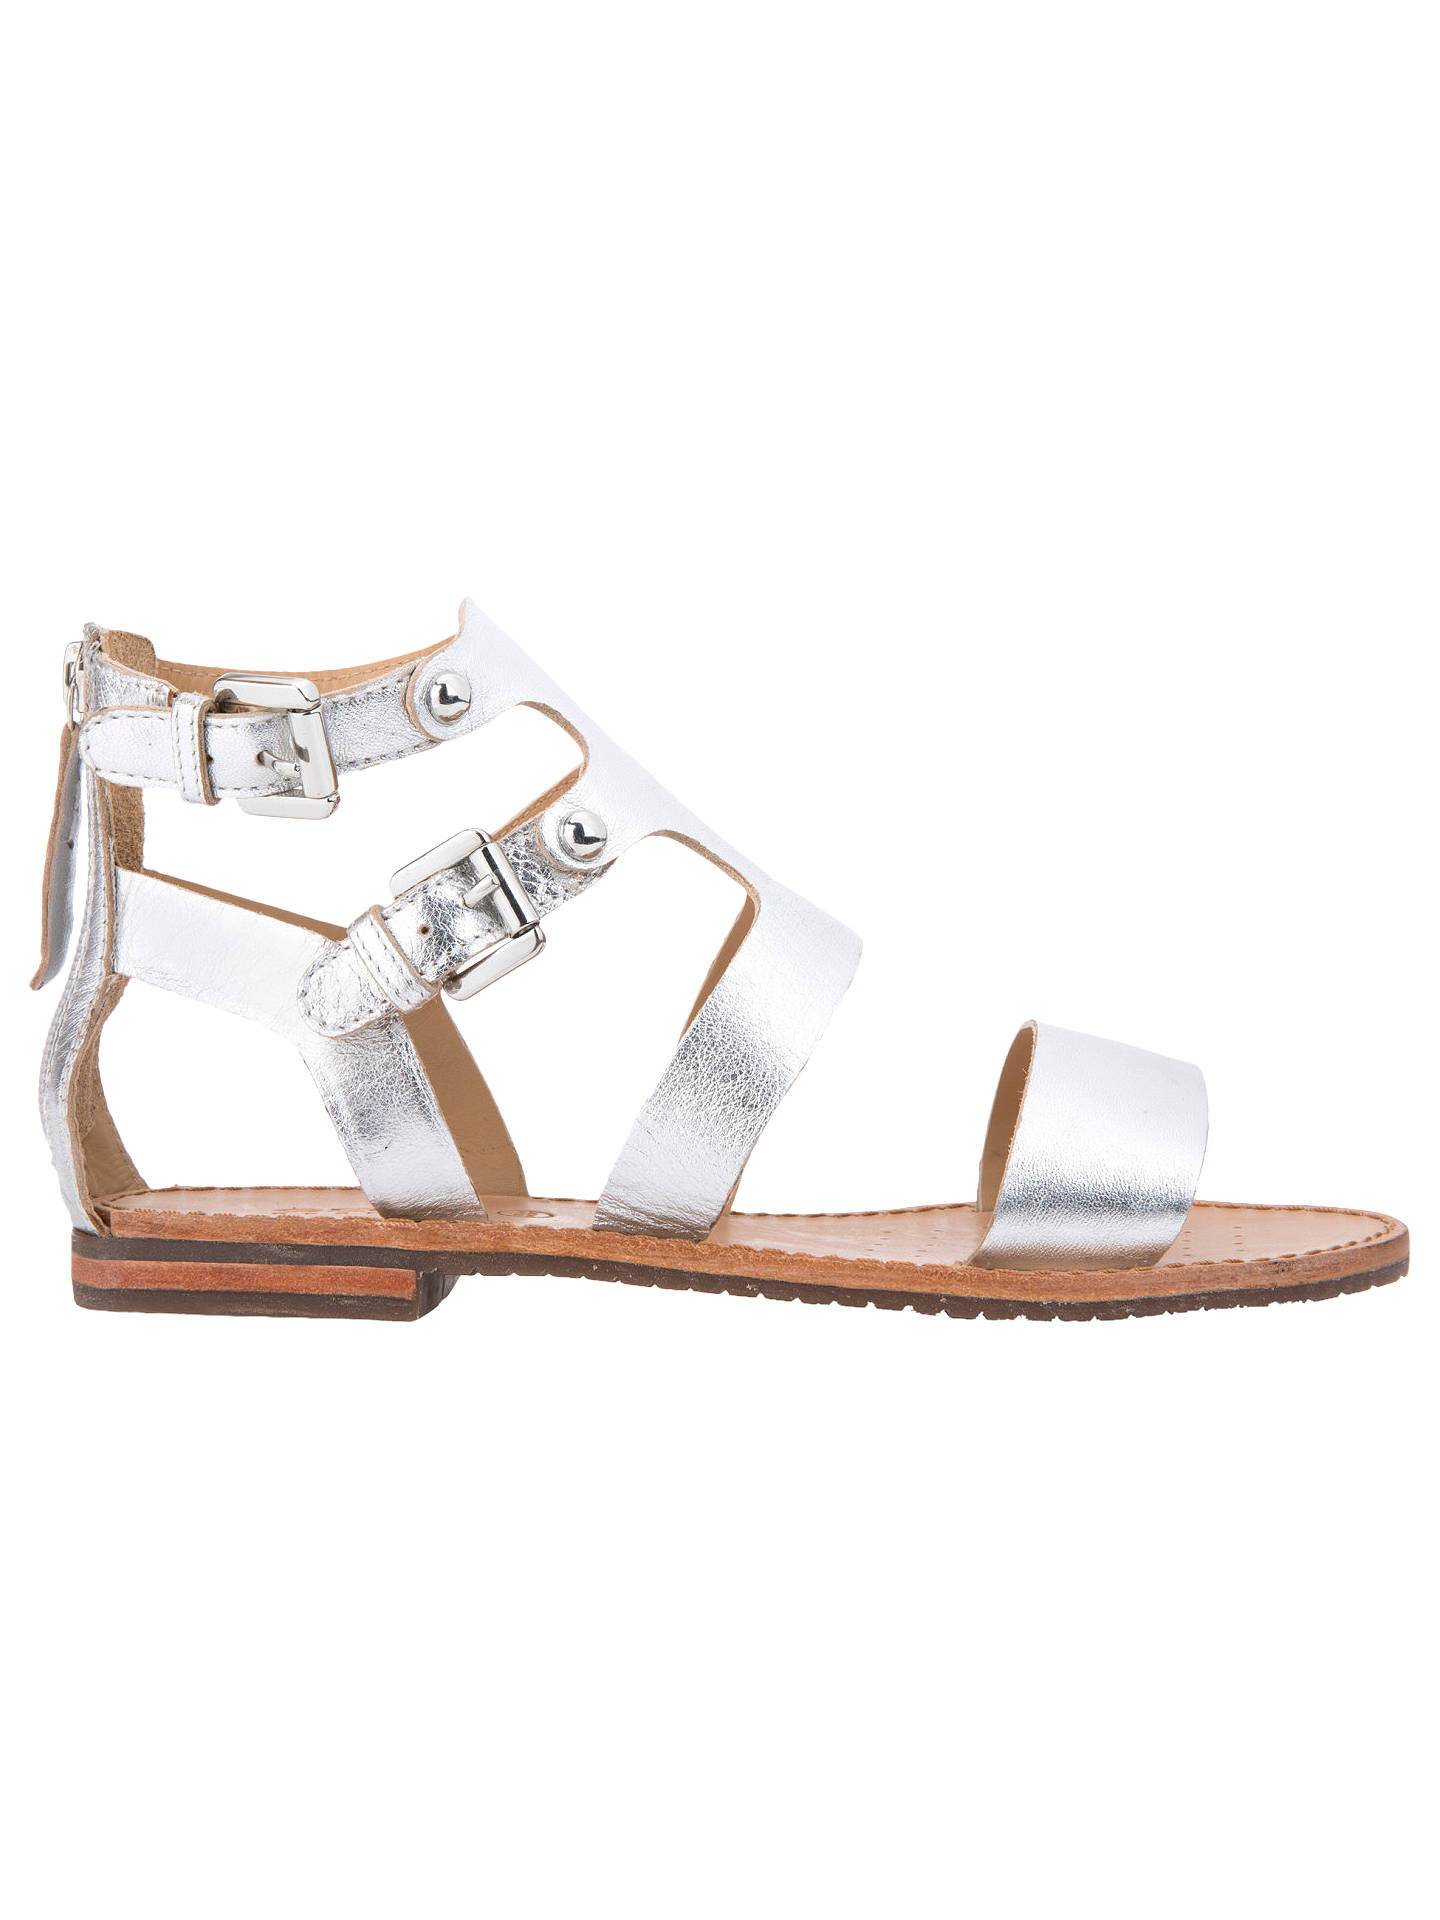 dbaabac41cd Buy Geox Sozy Gladiator Sandals